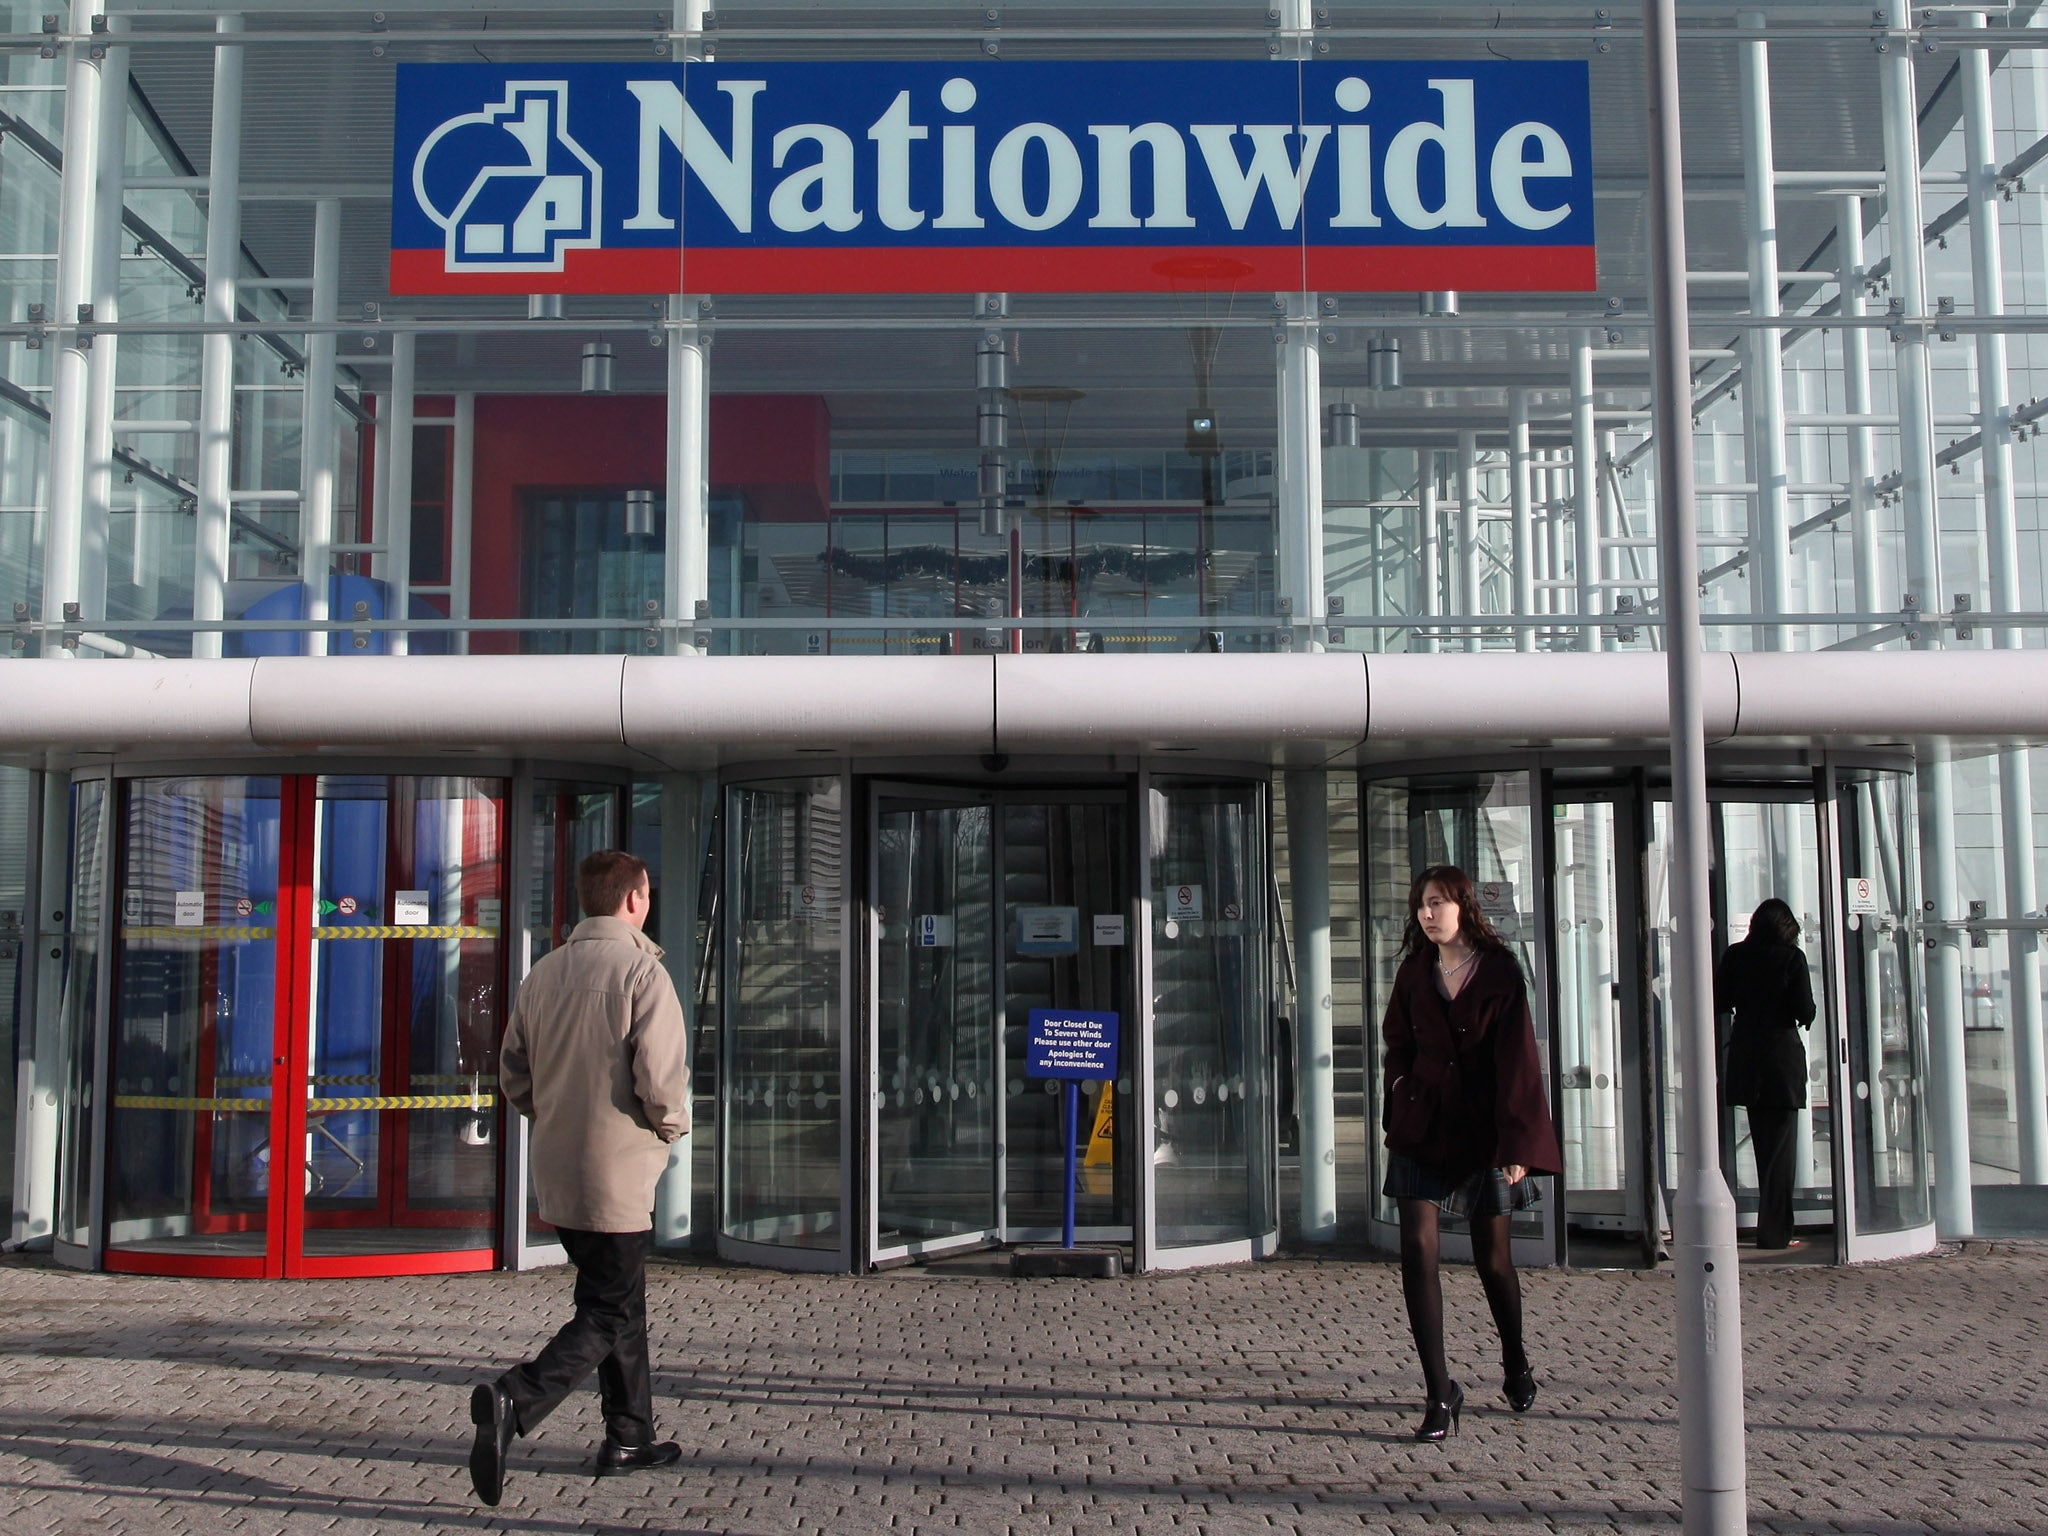 Does Nationwide (the Bank) have any shareholders?